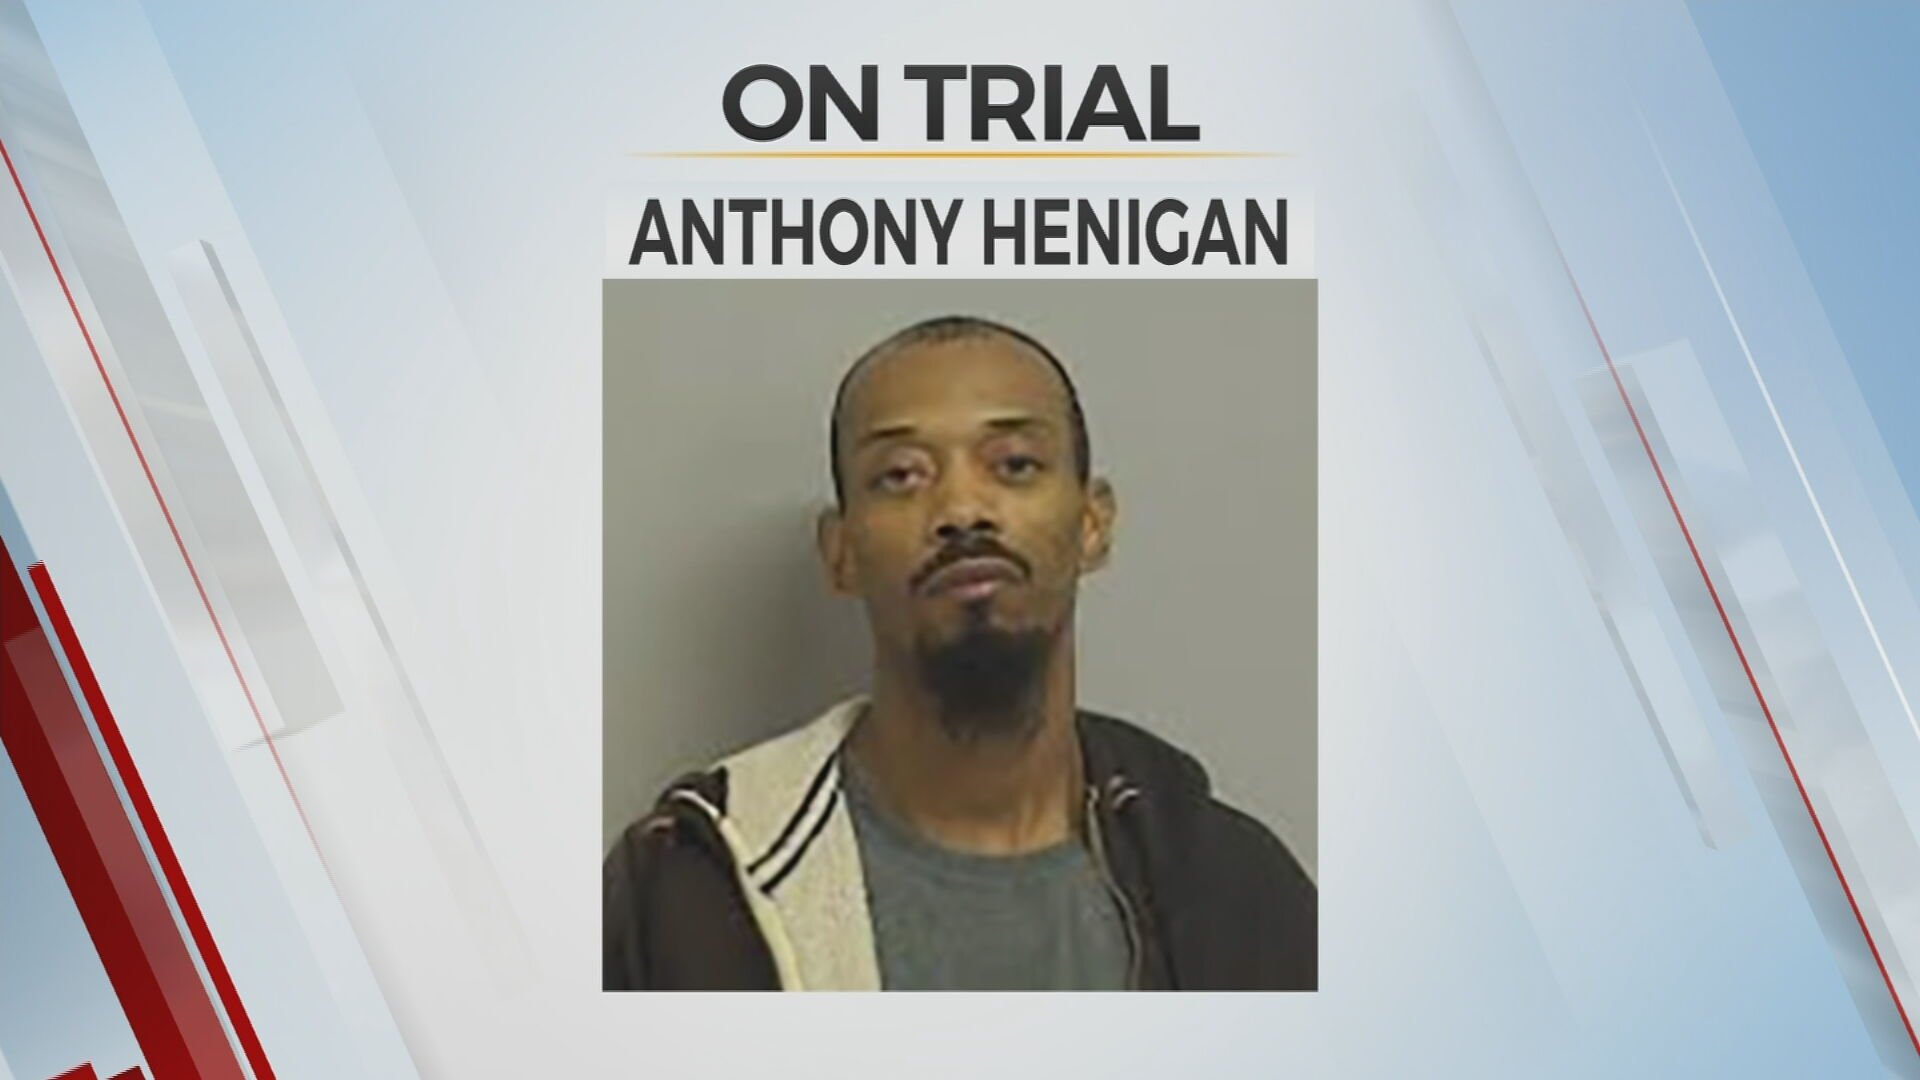 Man Accused Of Sexually Abusing Child For 4 Years On Trial In Tulsa County